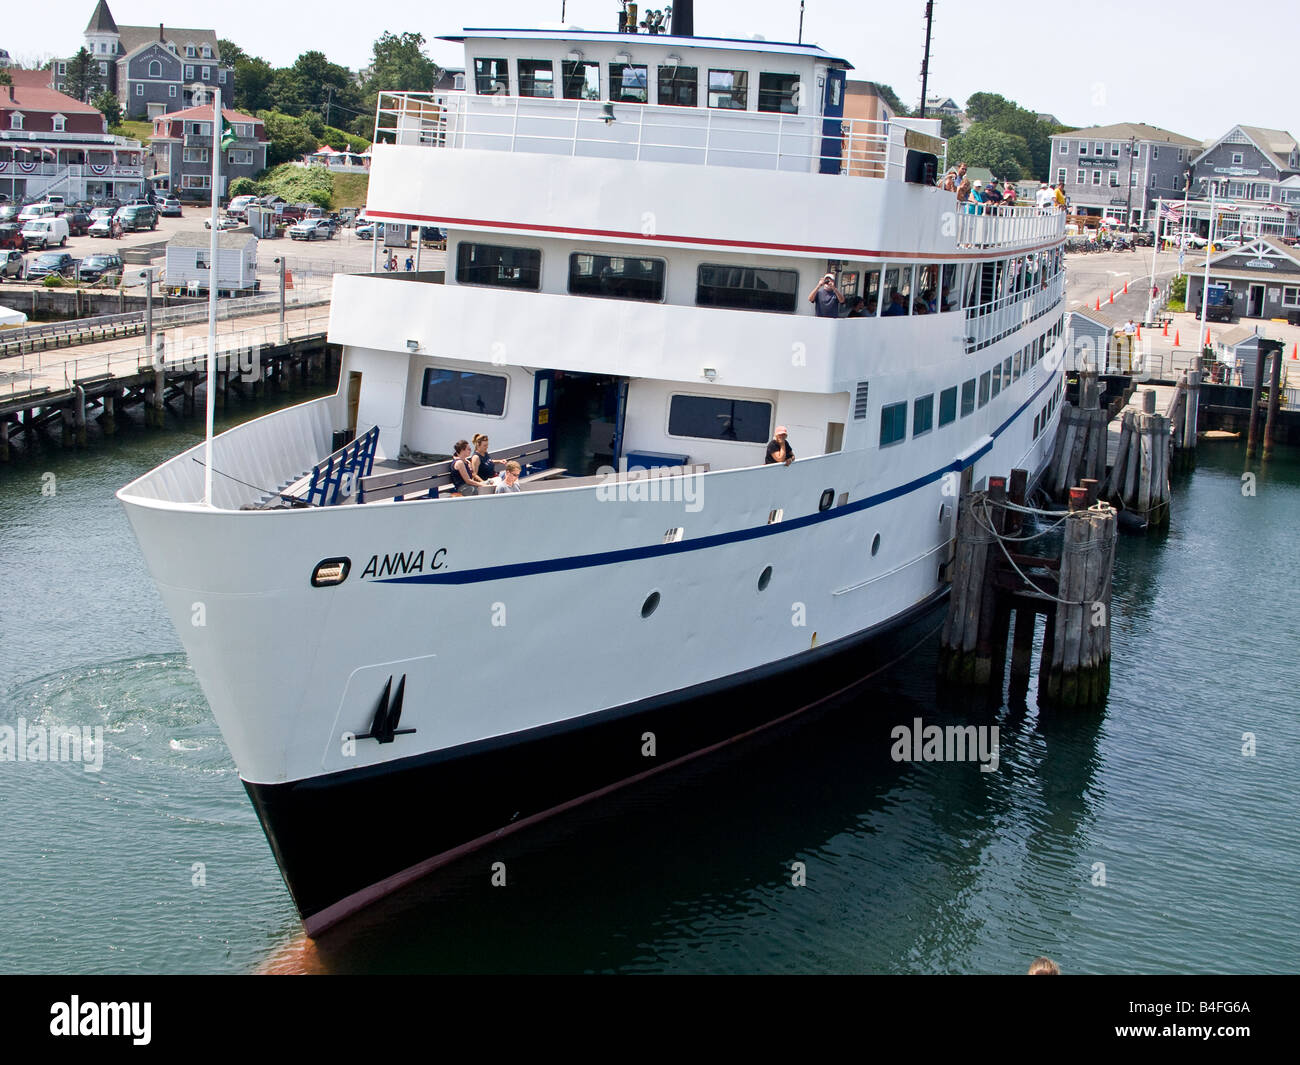 block island ferry boat stock photo: 20010994 - alamy